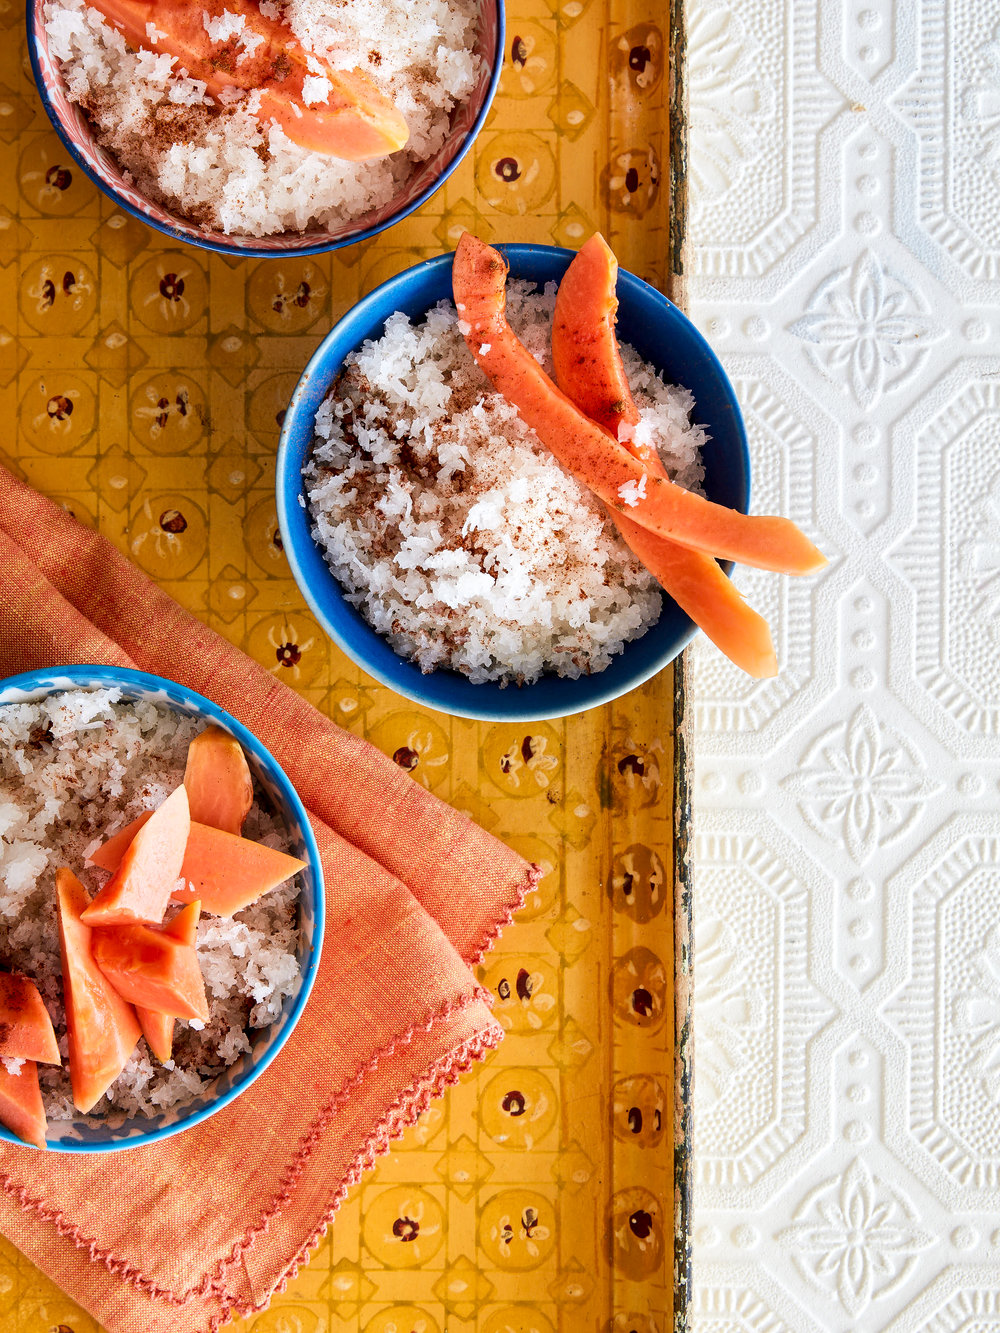 Cuba_Cookbook_Shredded_Coconut_0788.jpg